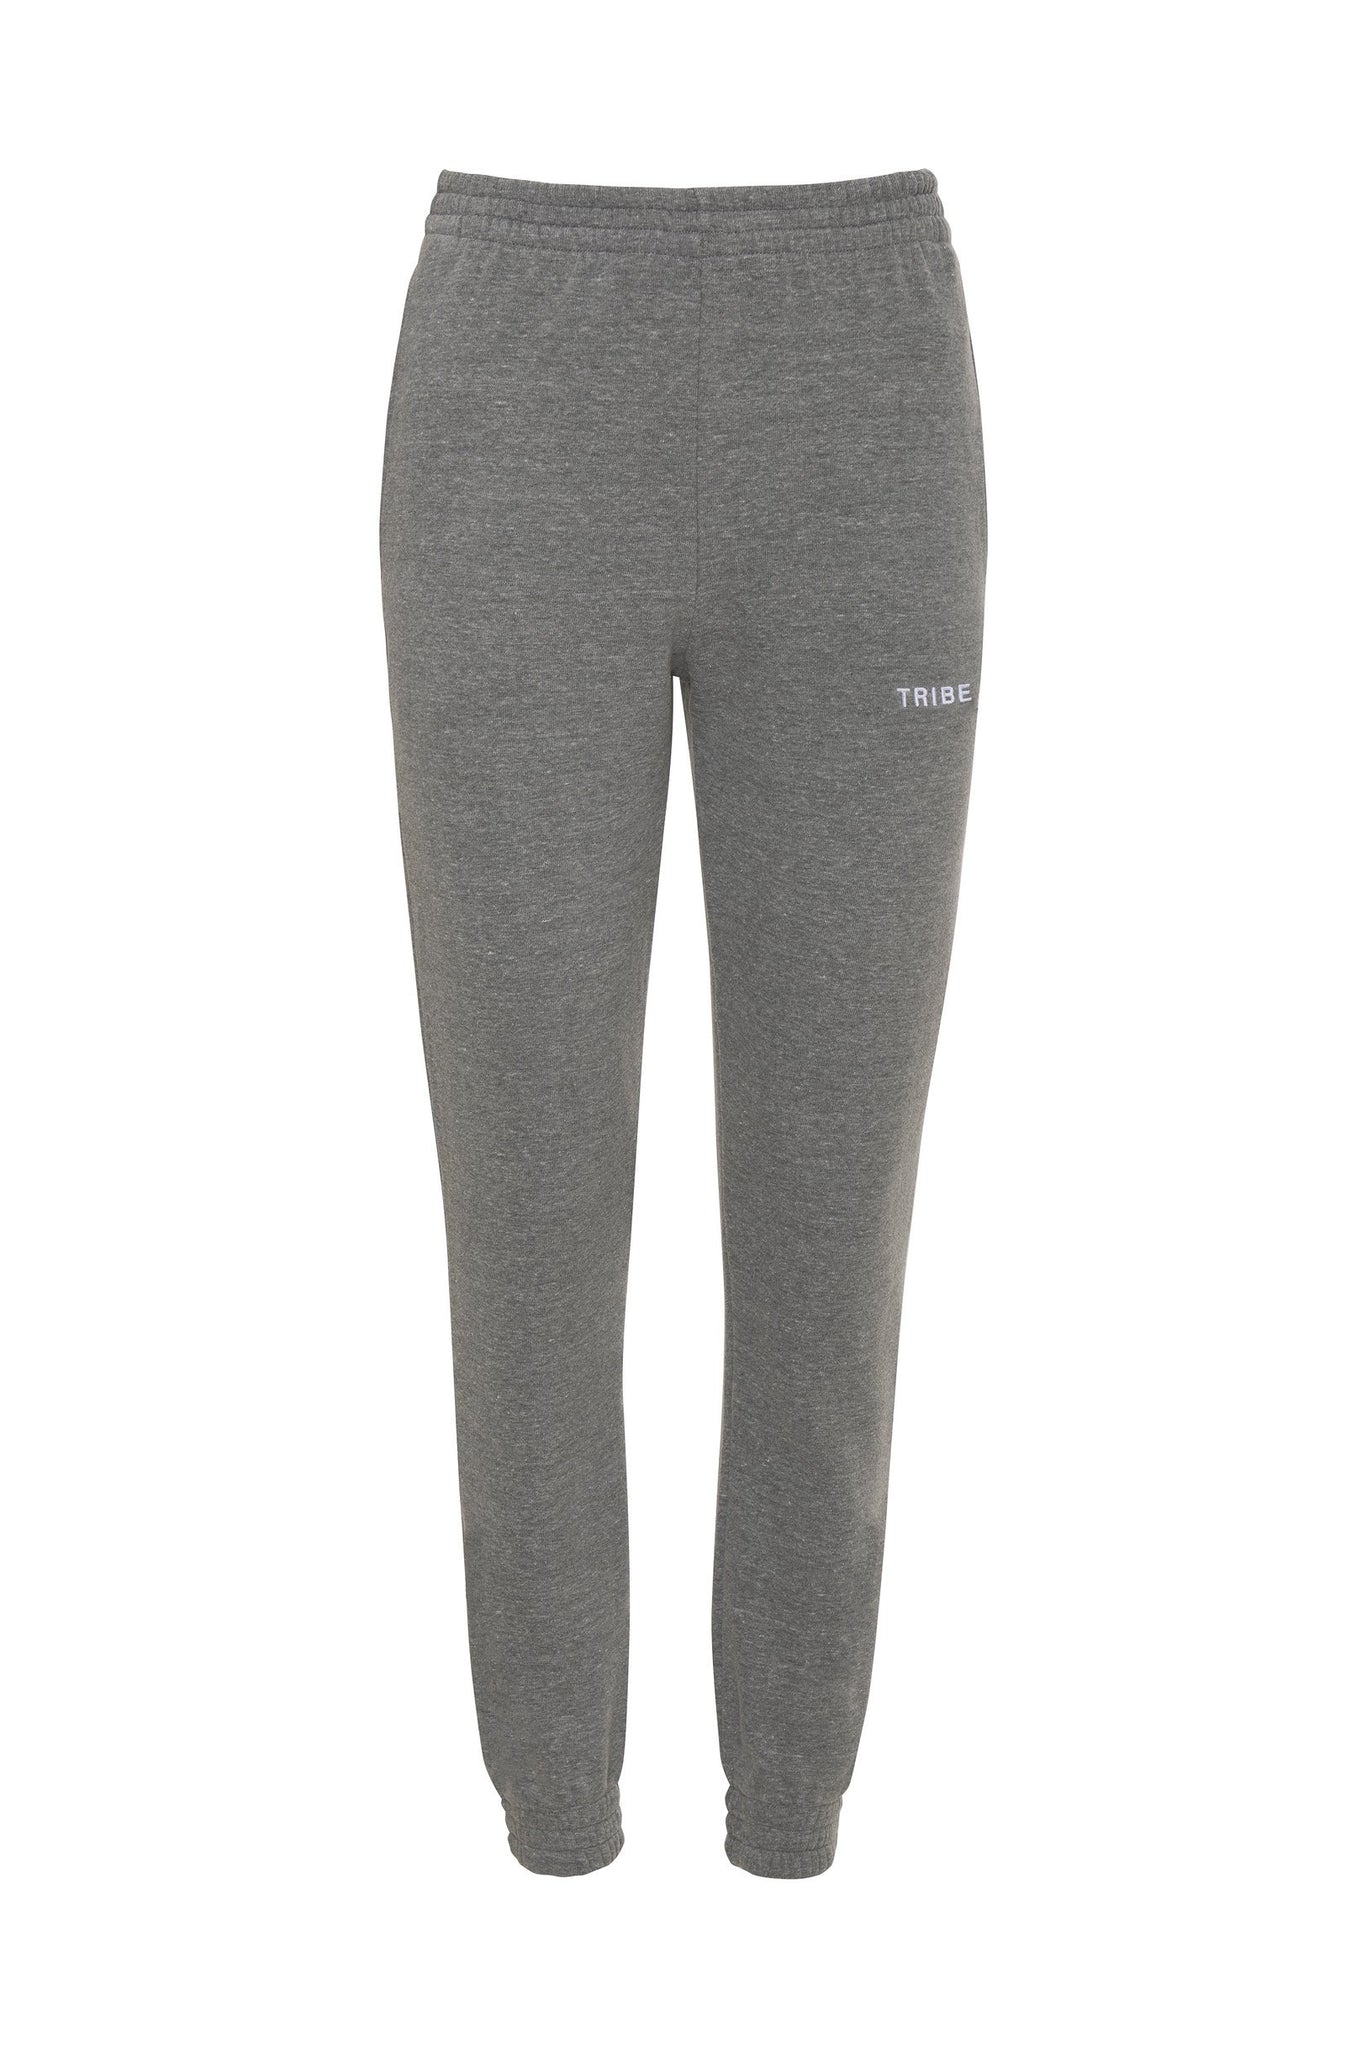 Butter Sweatpant - Women's